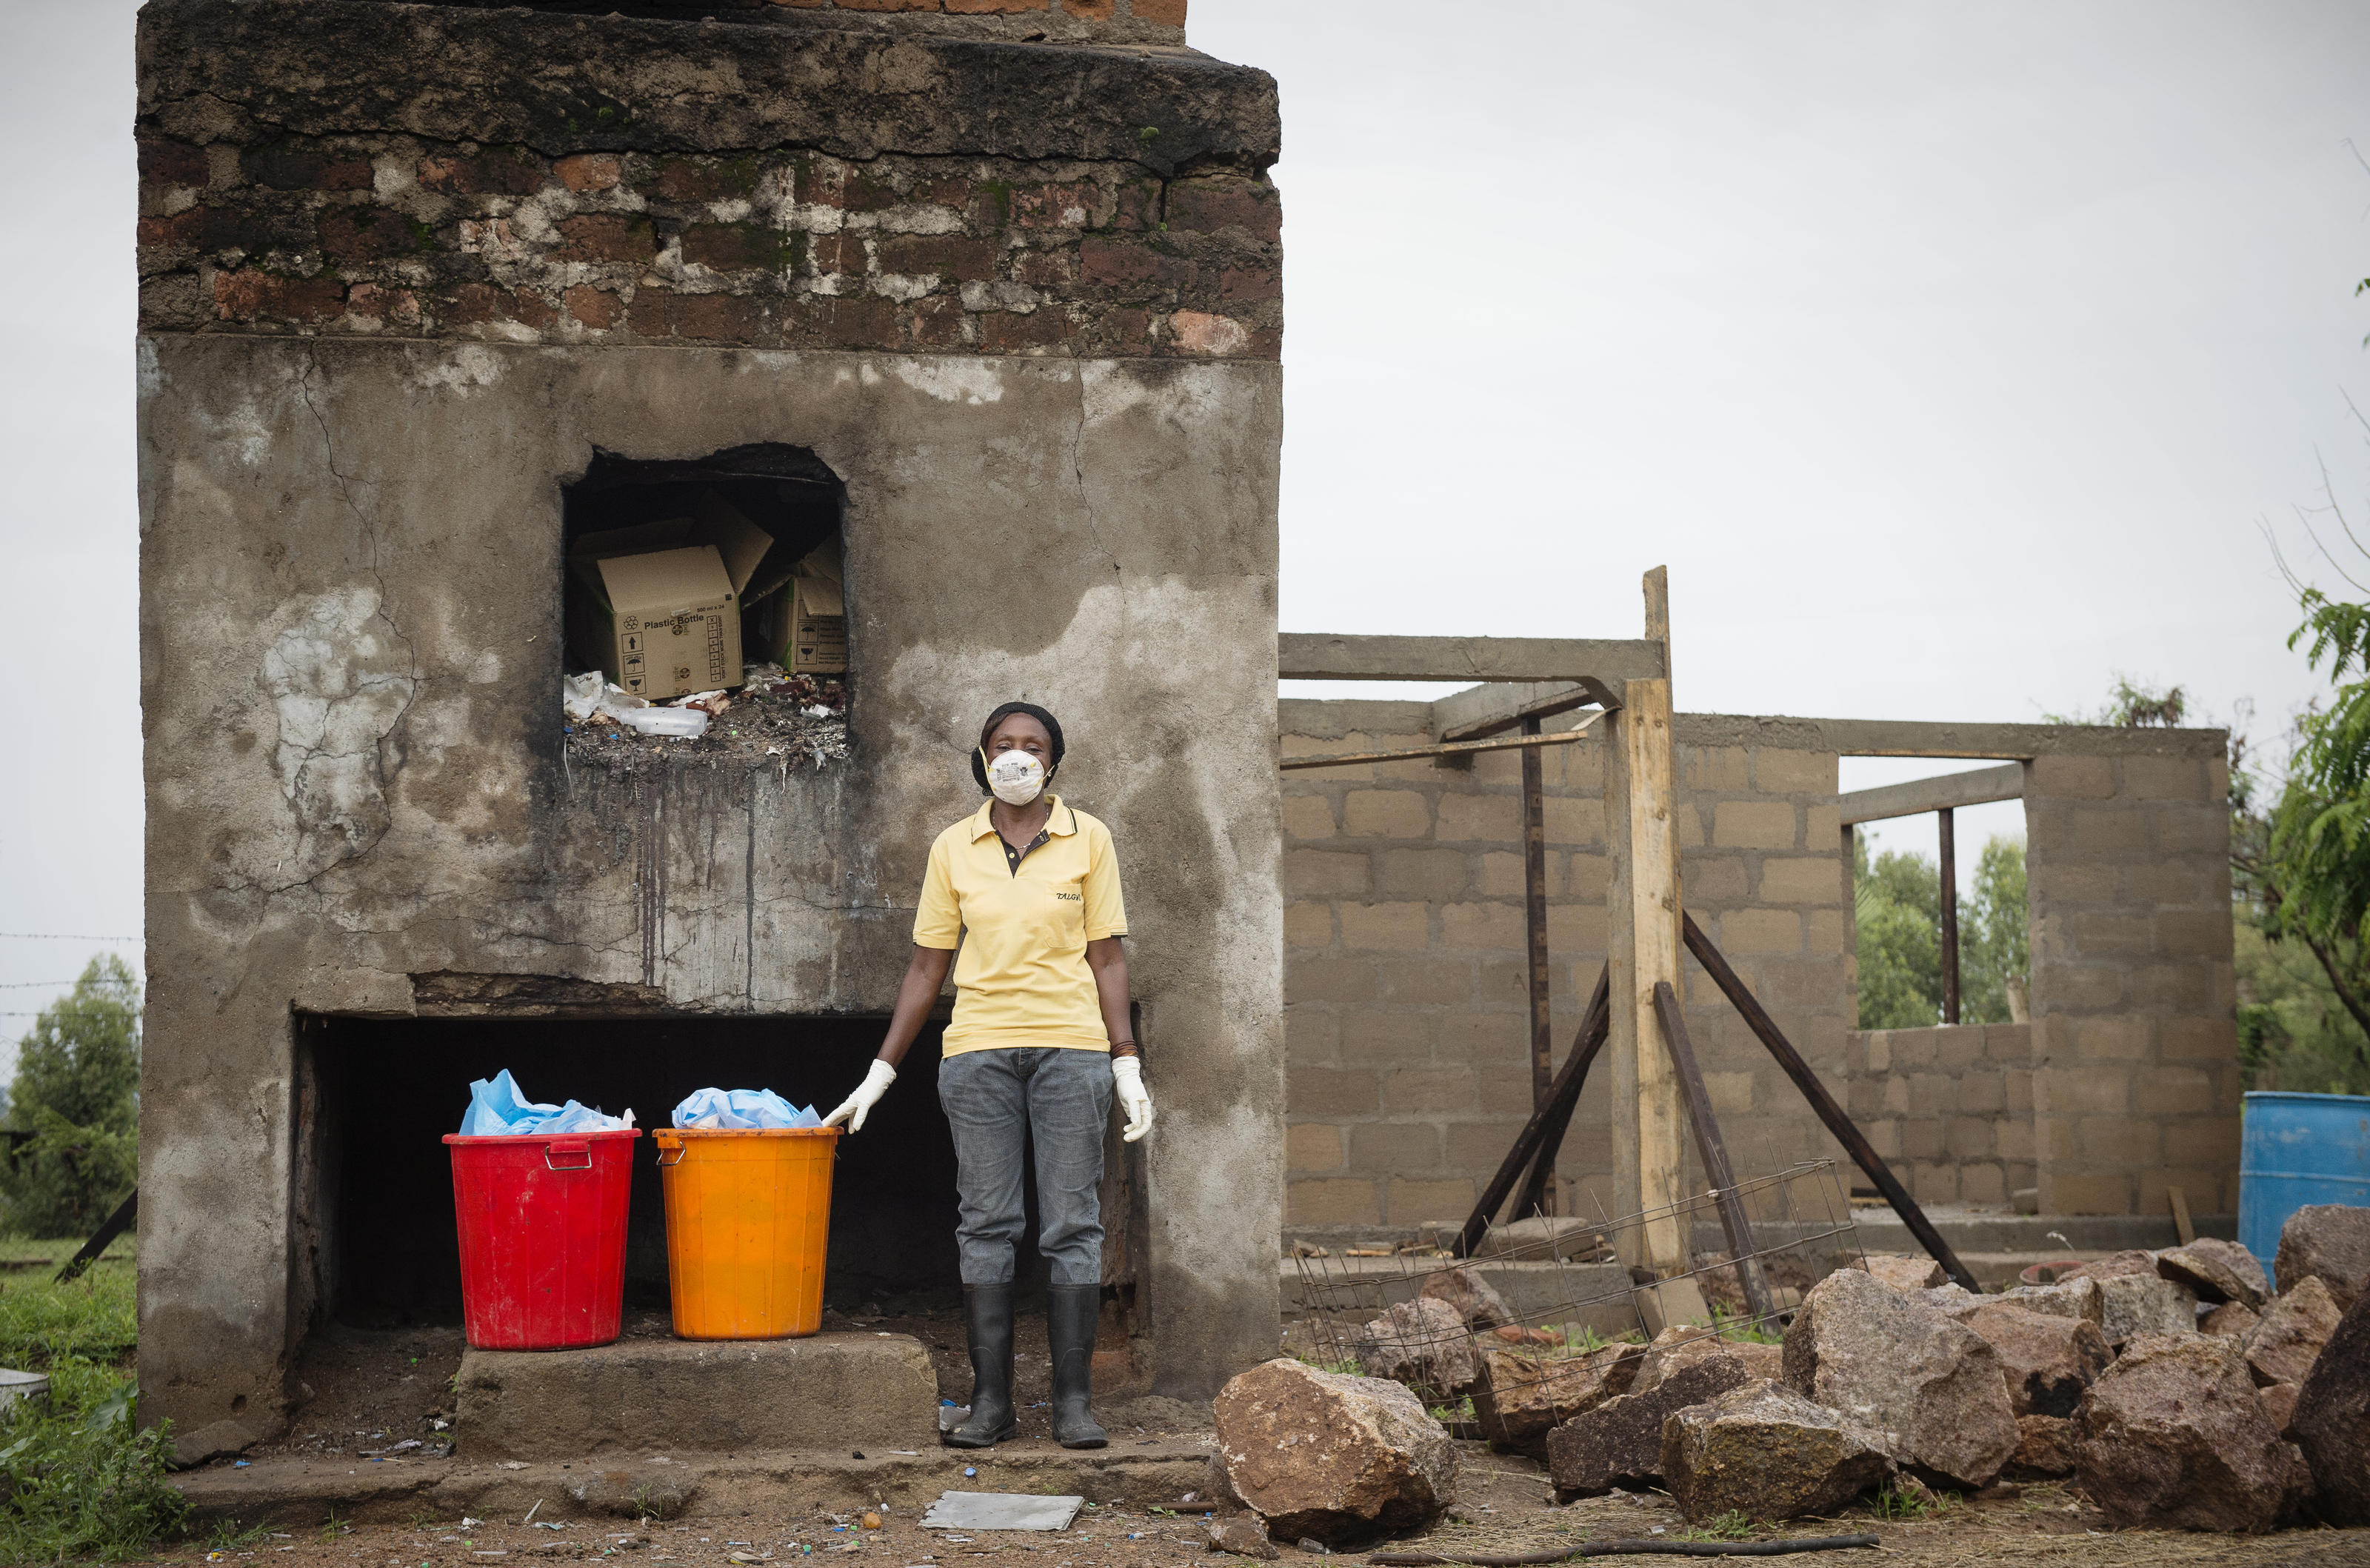 Cleaner Margaret Edson stands in front of the existing incinerator with the new incinerator construction behind, at Kiomboi Hospital, Iramba, Tanzania, December 2015.